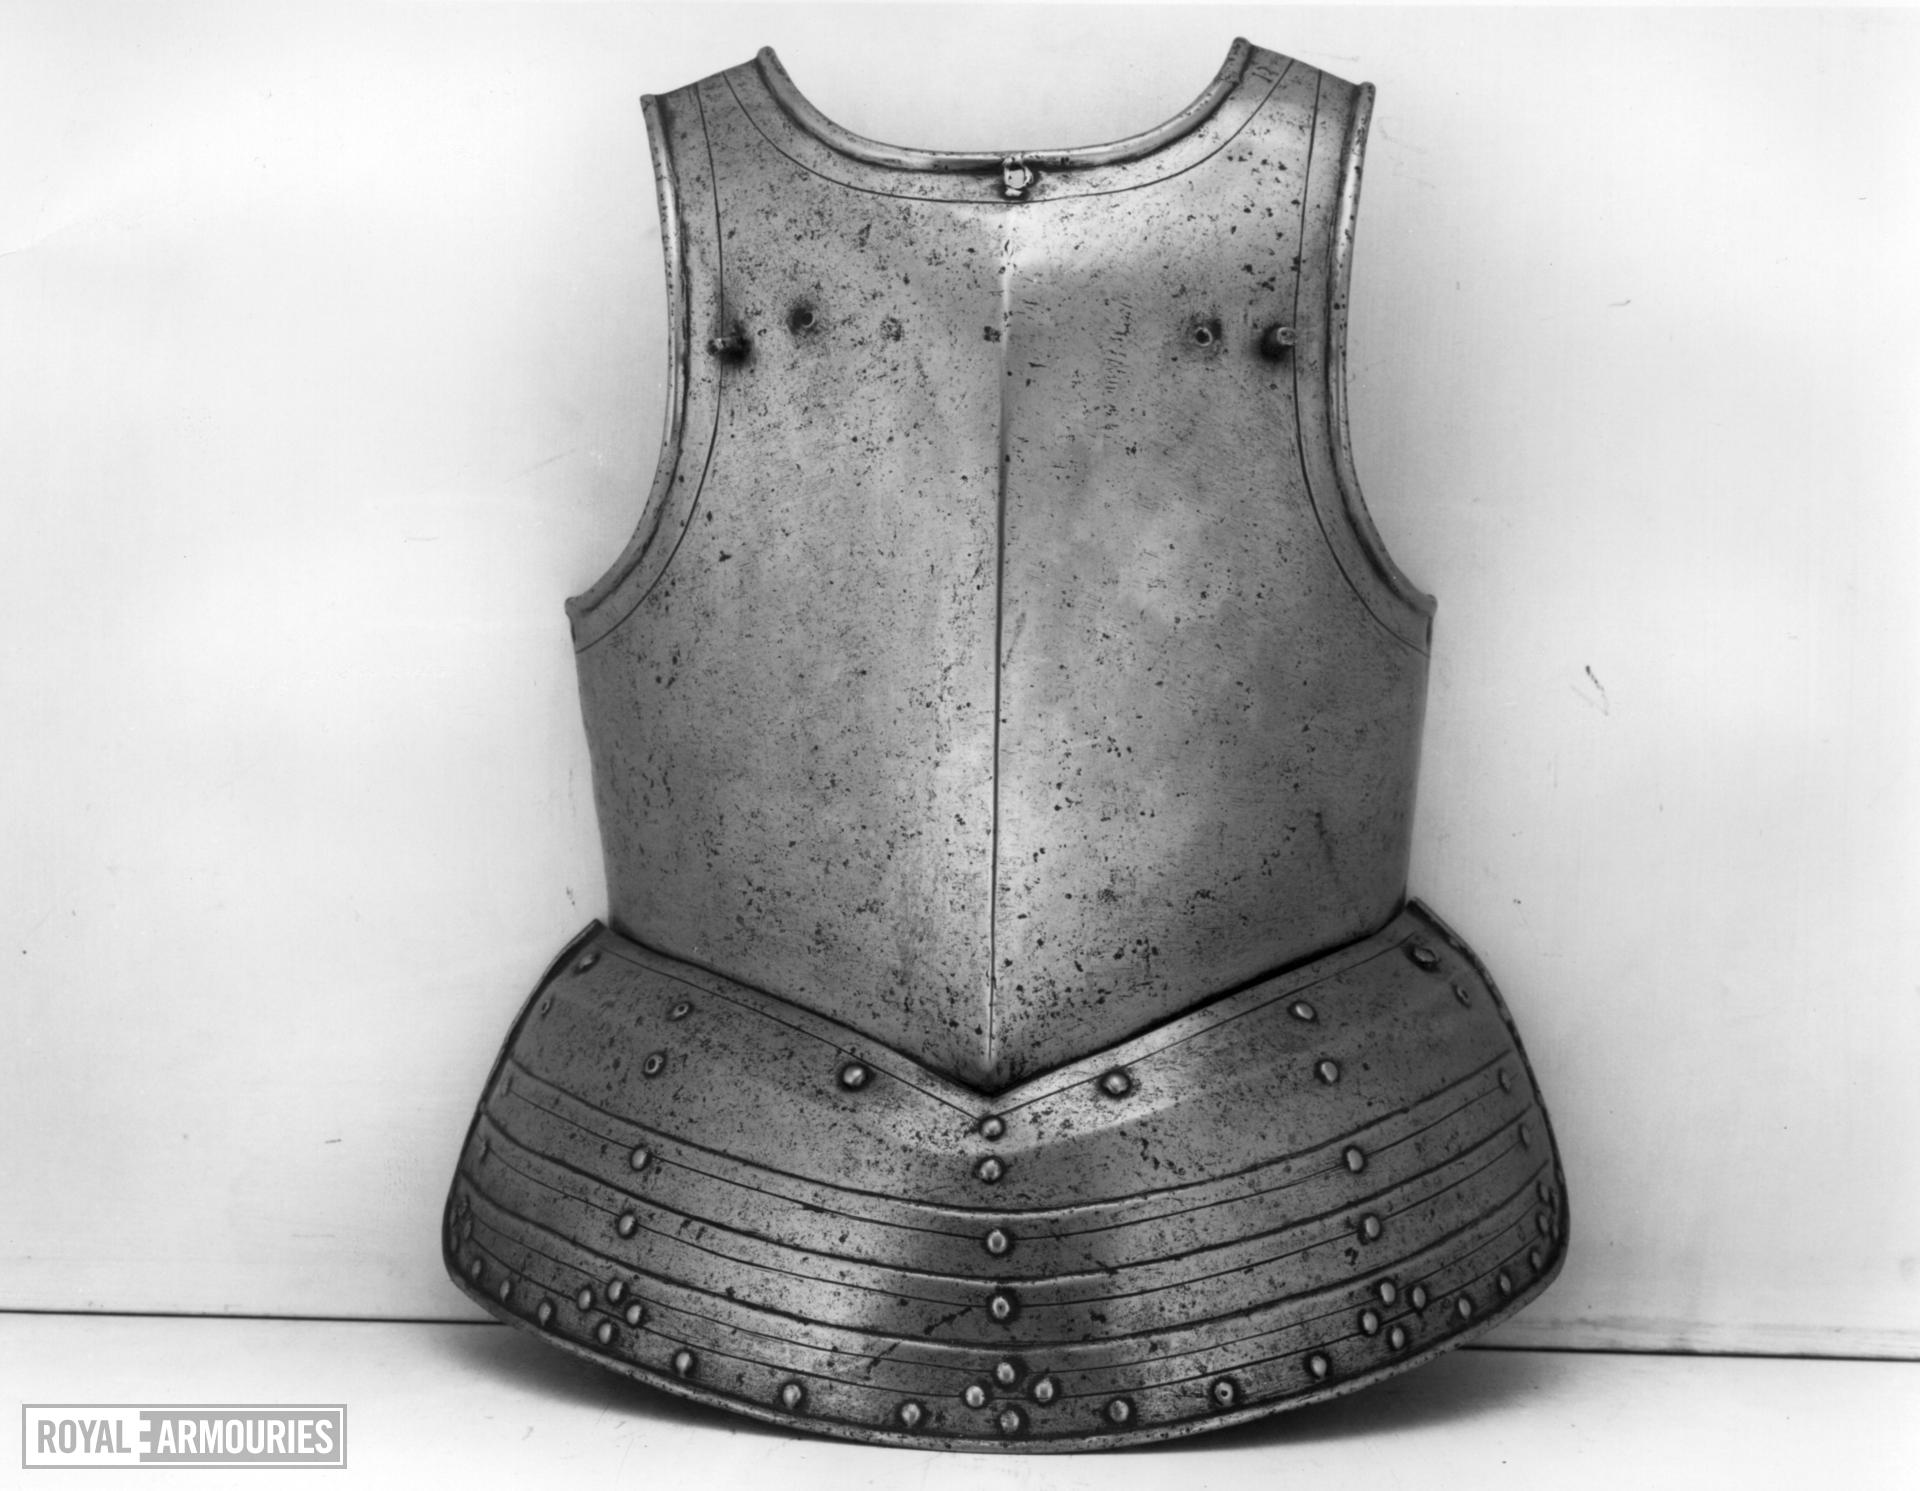 Pikeman's breastplate